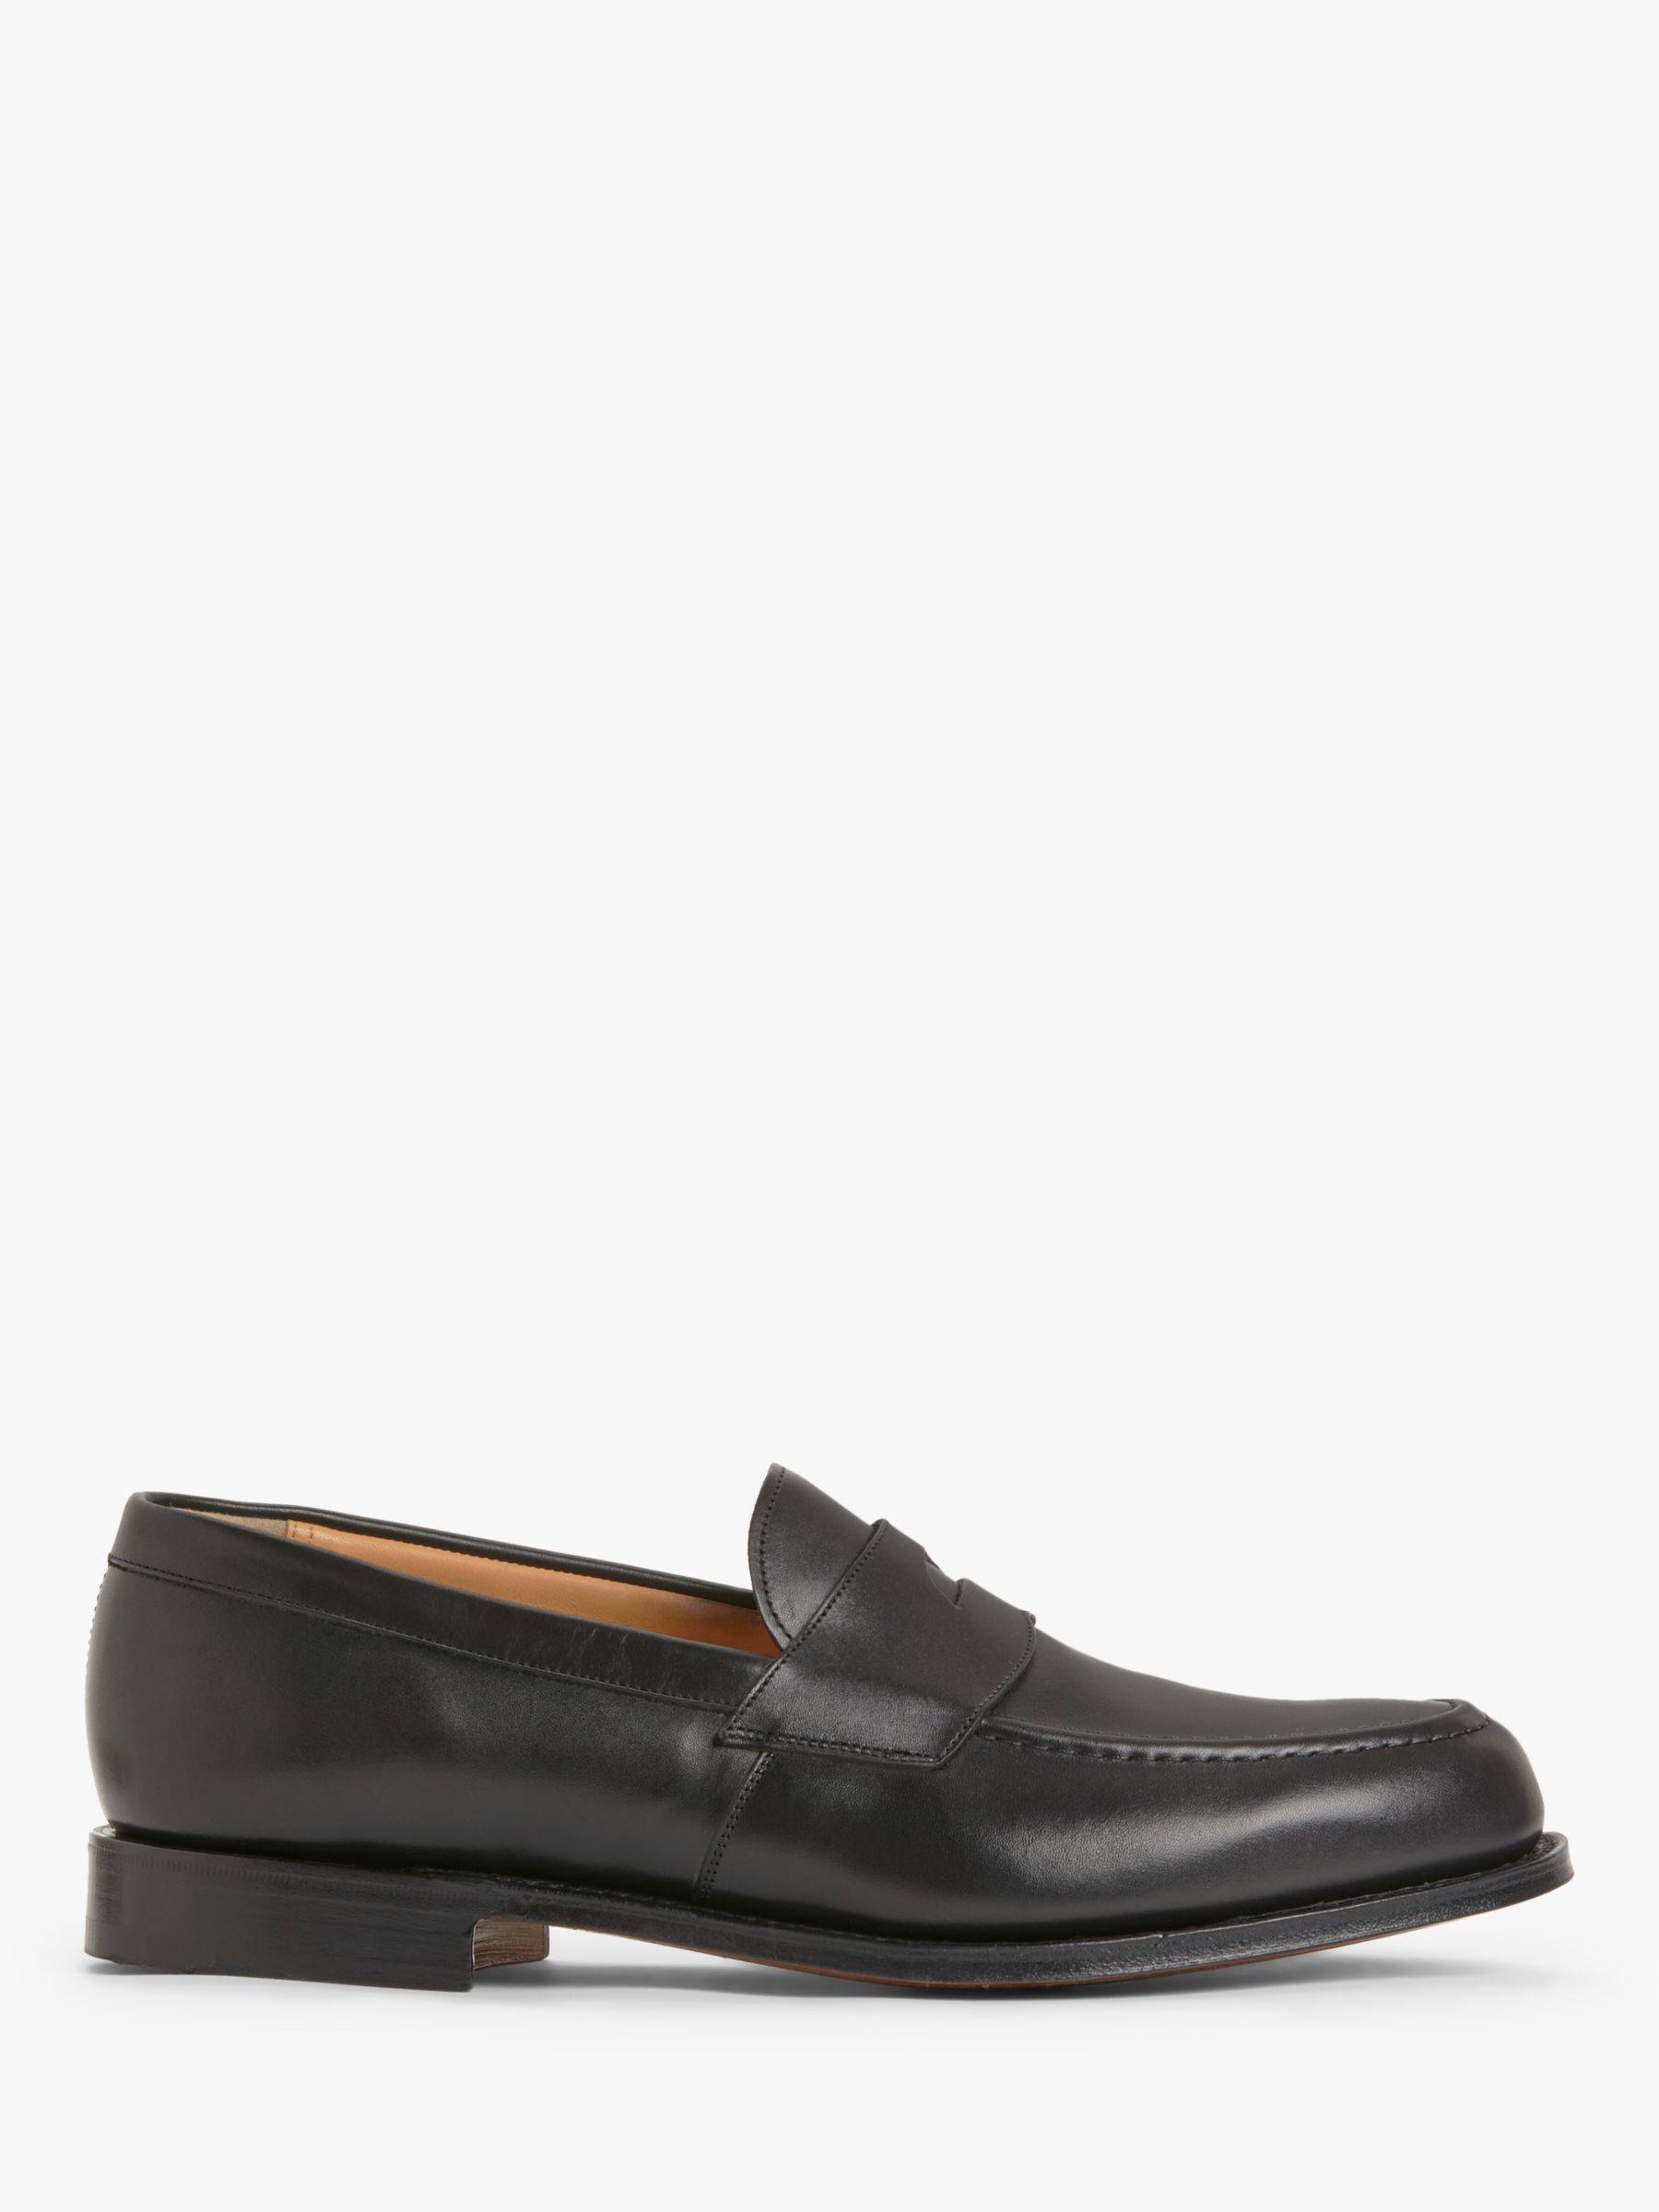 Church's Church's Dawley Leather Loafers, Black